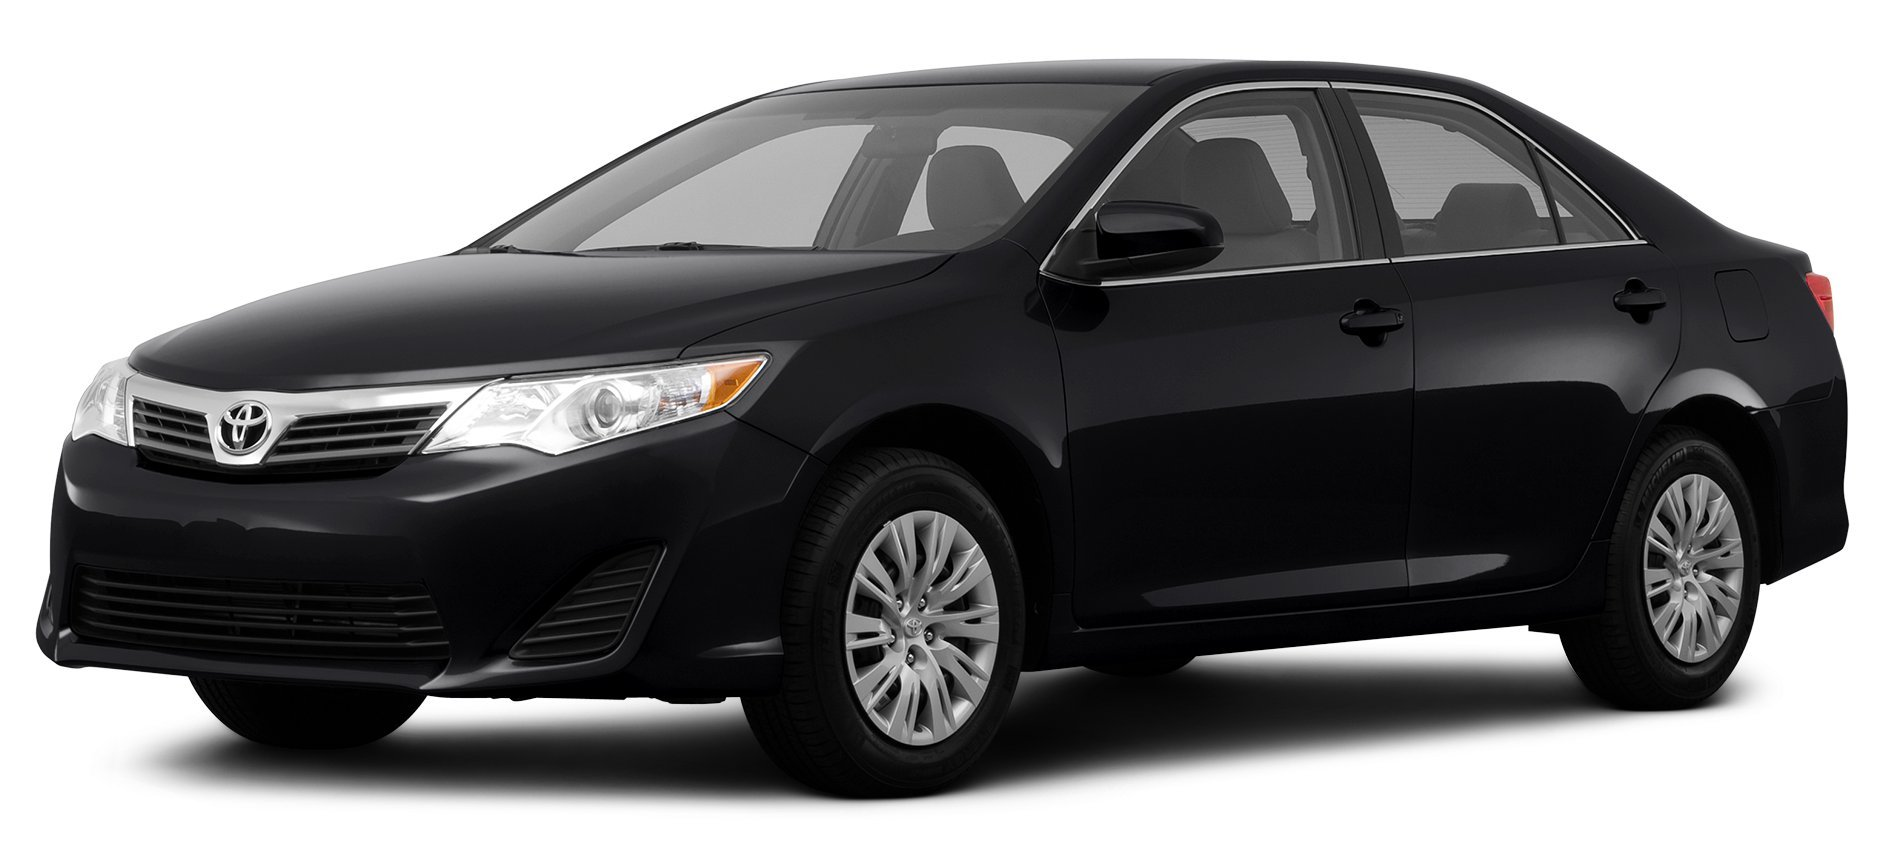 2012 Chevrolet Malibu Reviews Images And Specs Vehicles Mazda 6 Fuse Box Problems Toyota Camry L 4 Door Sedan Cylinder Automatic Transmission Natl